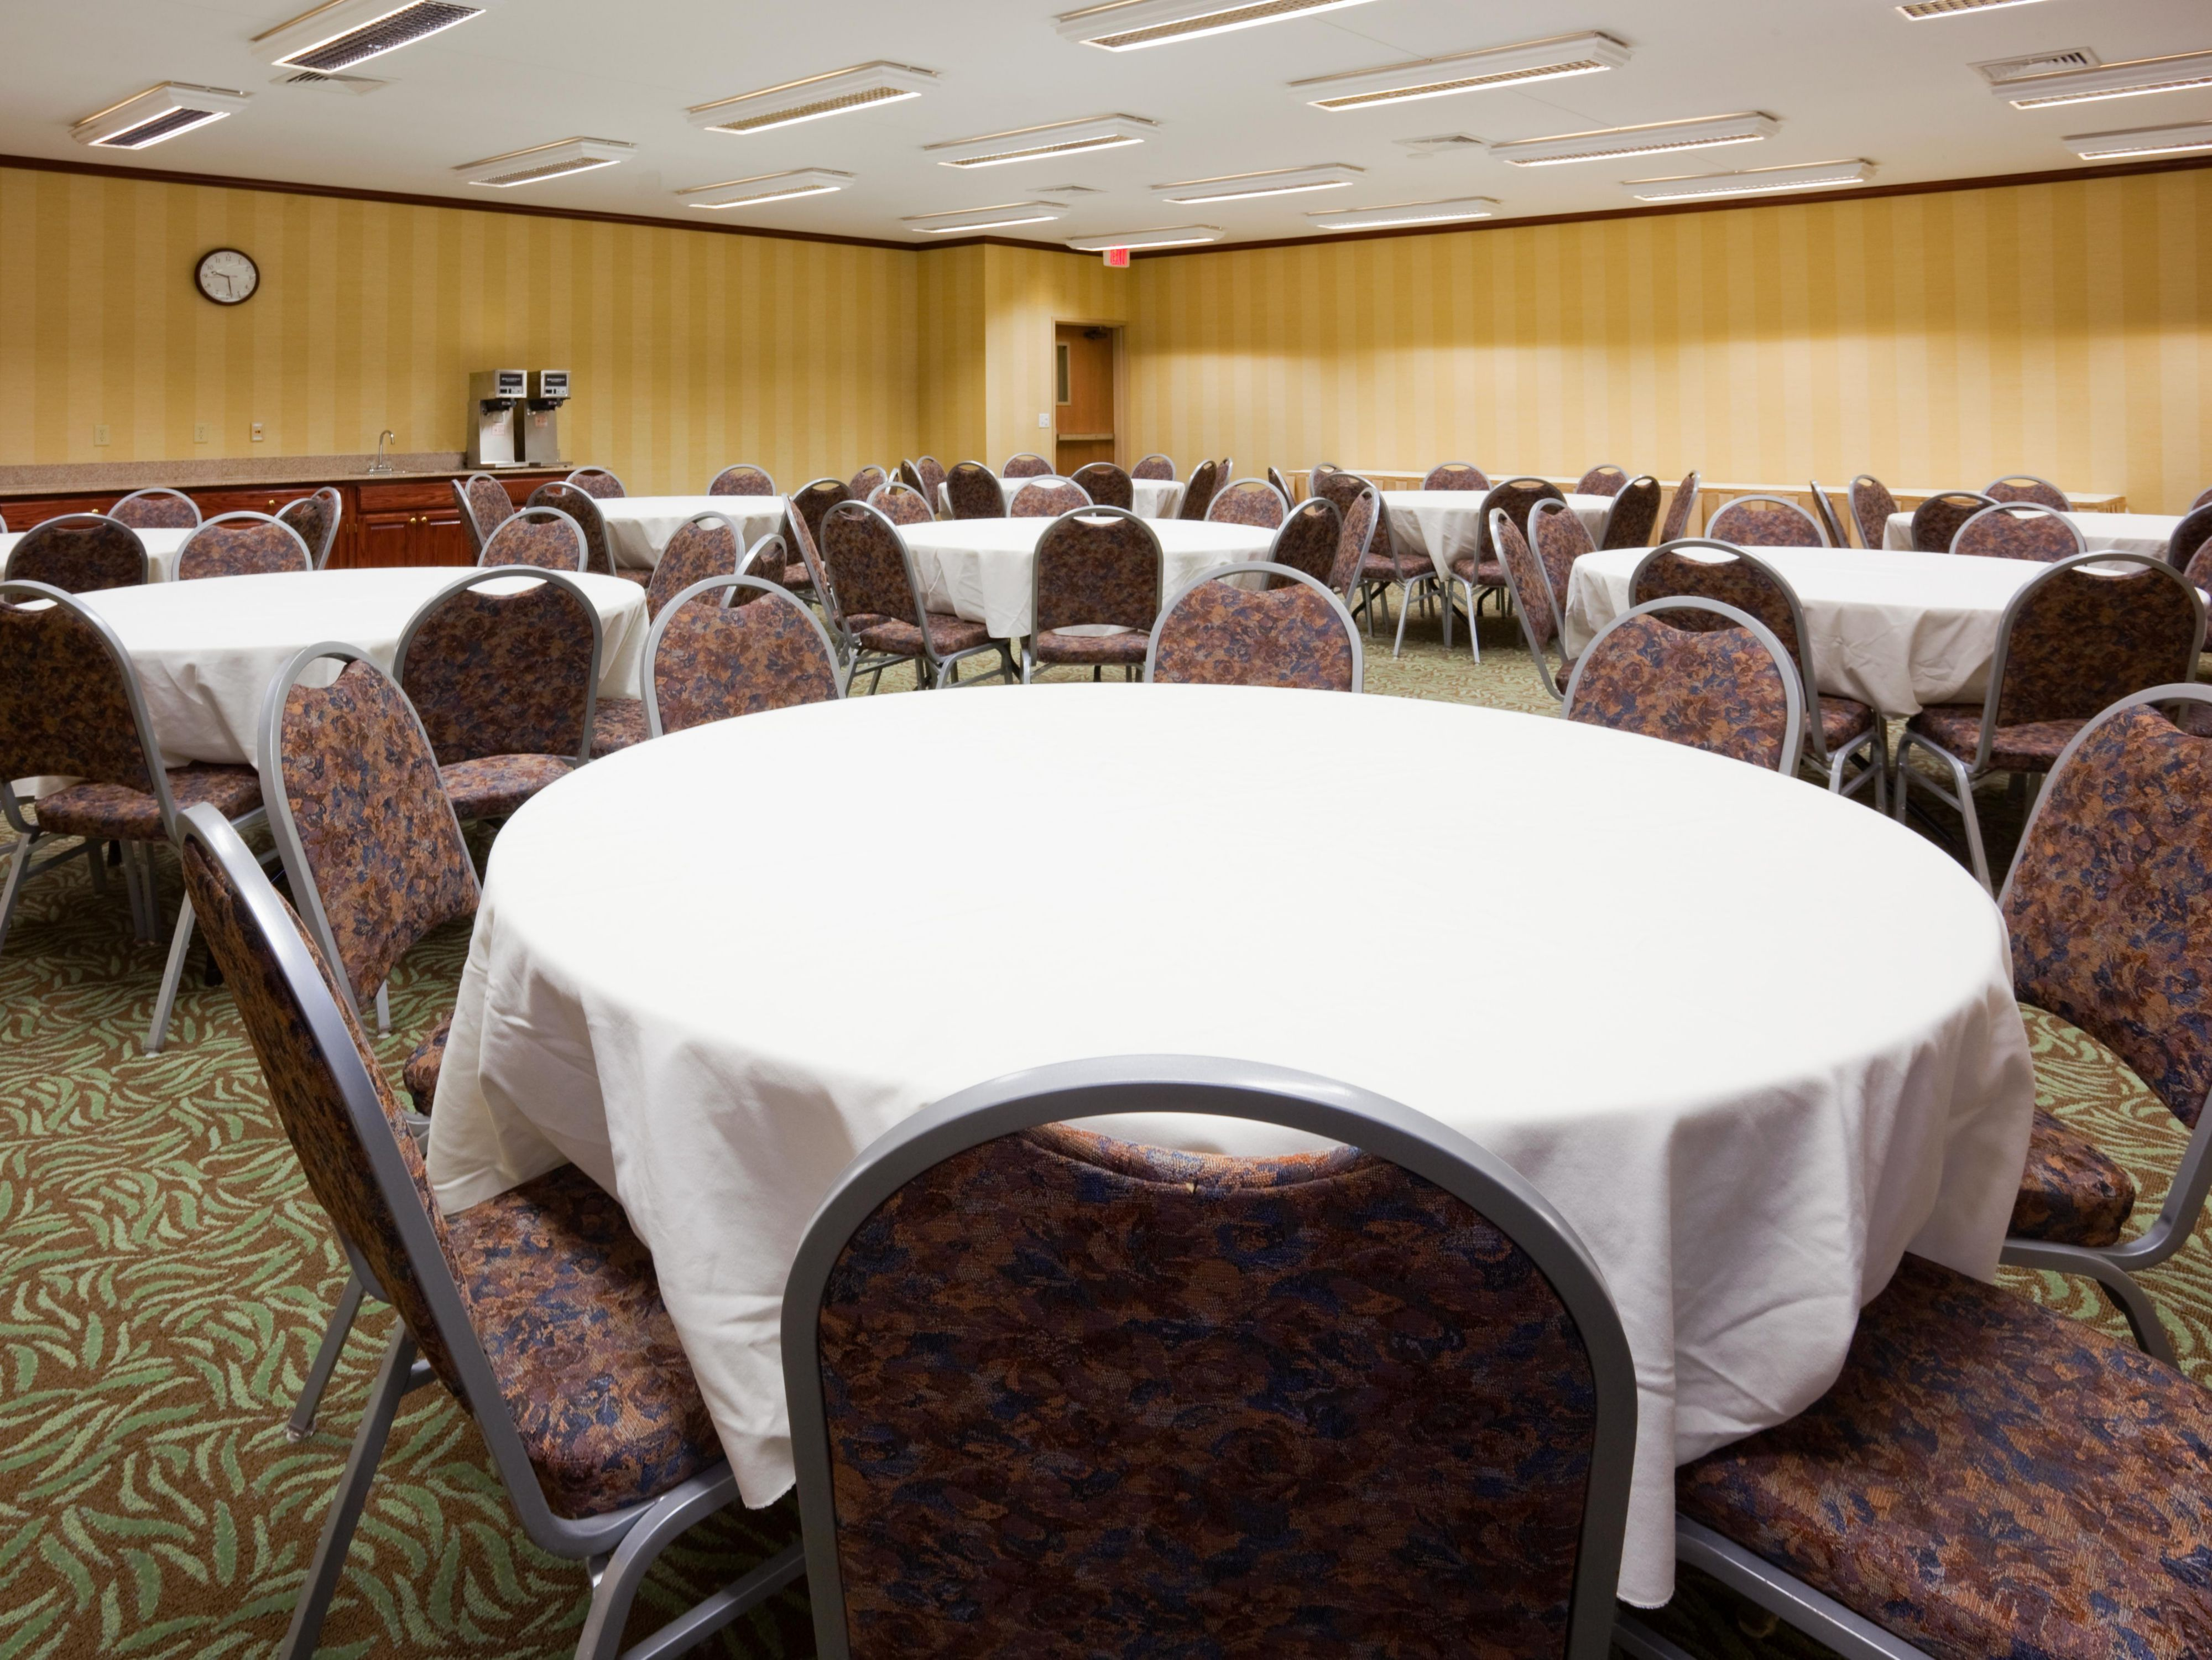 Carlton Meeting Room in Sioux Falls Hotel